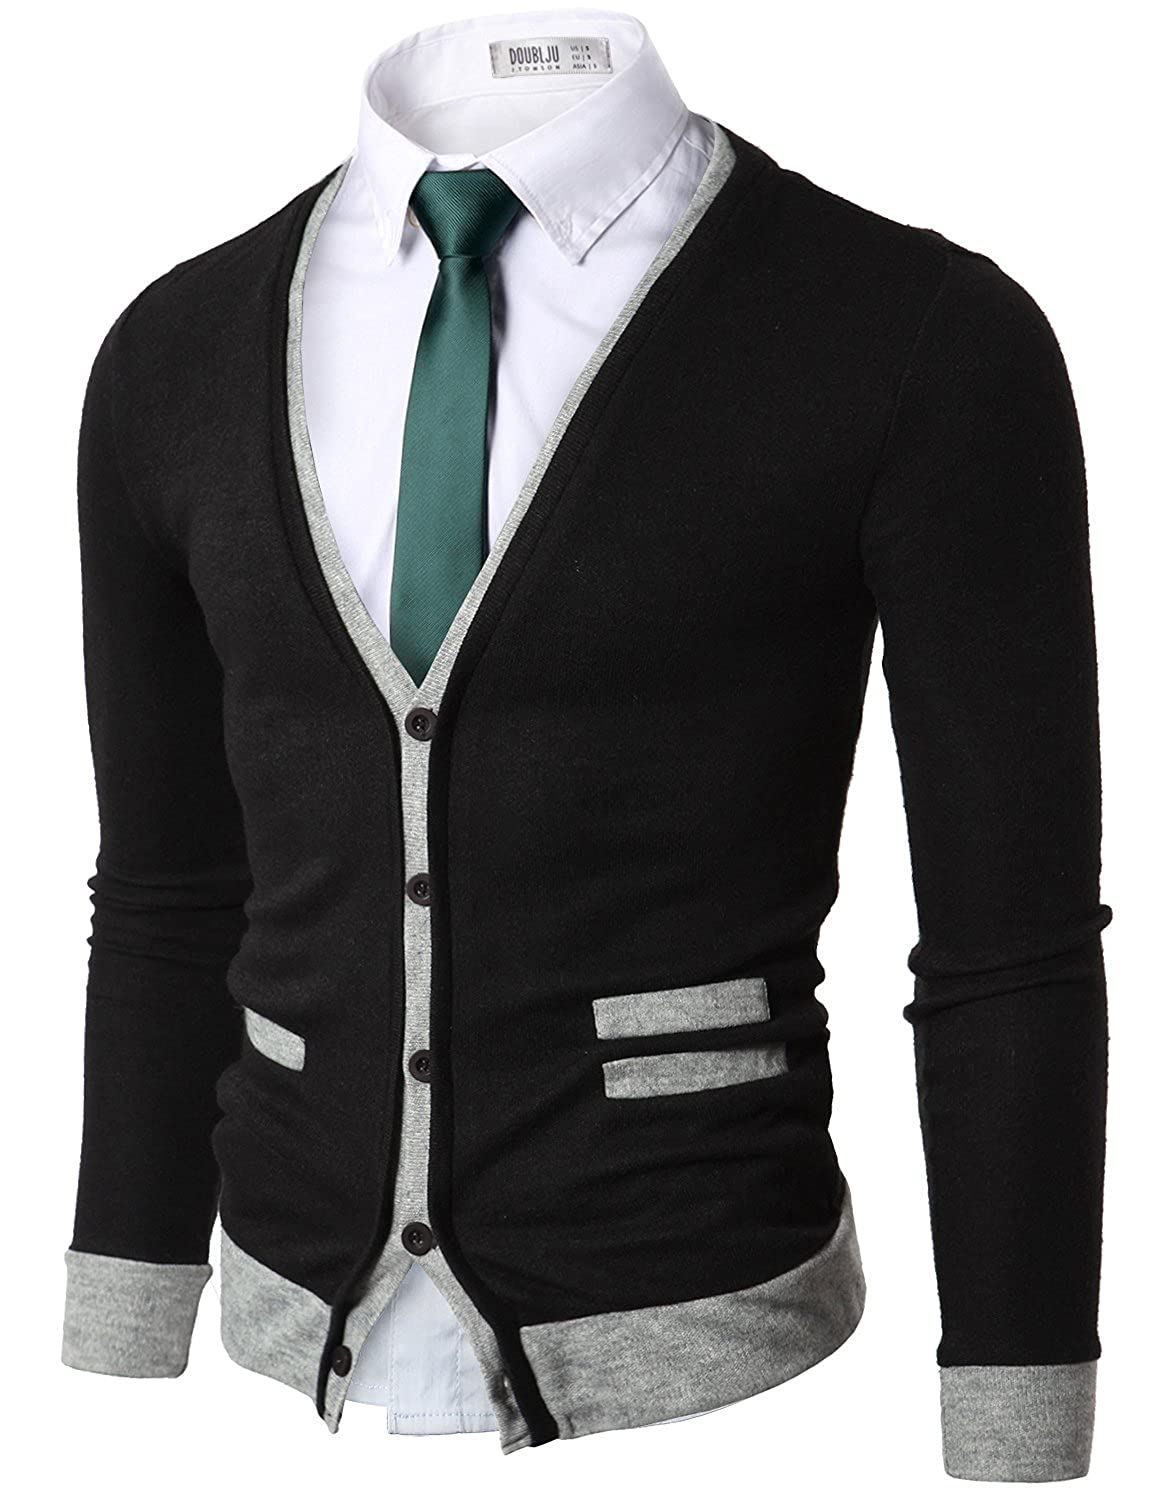 Doublju Mens Sweater Cardigan with Pocket Detail